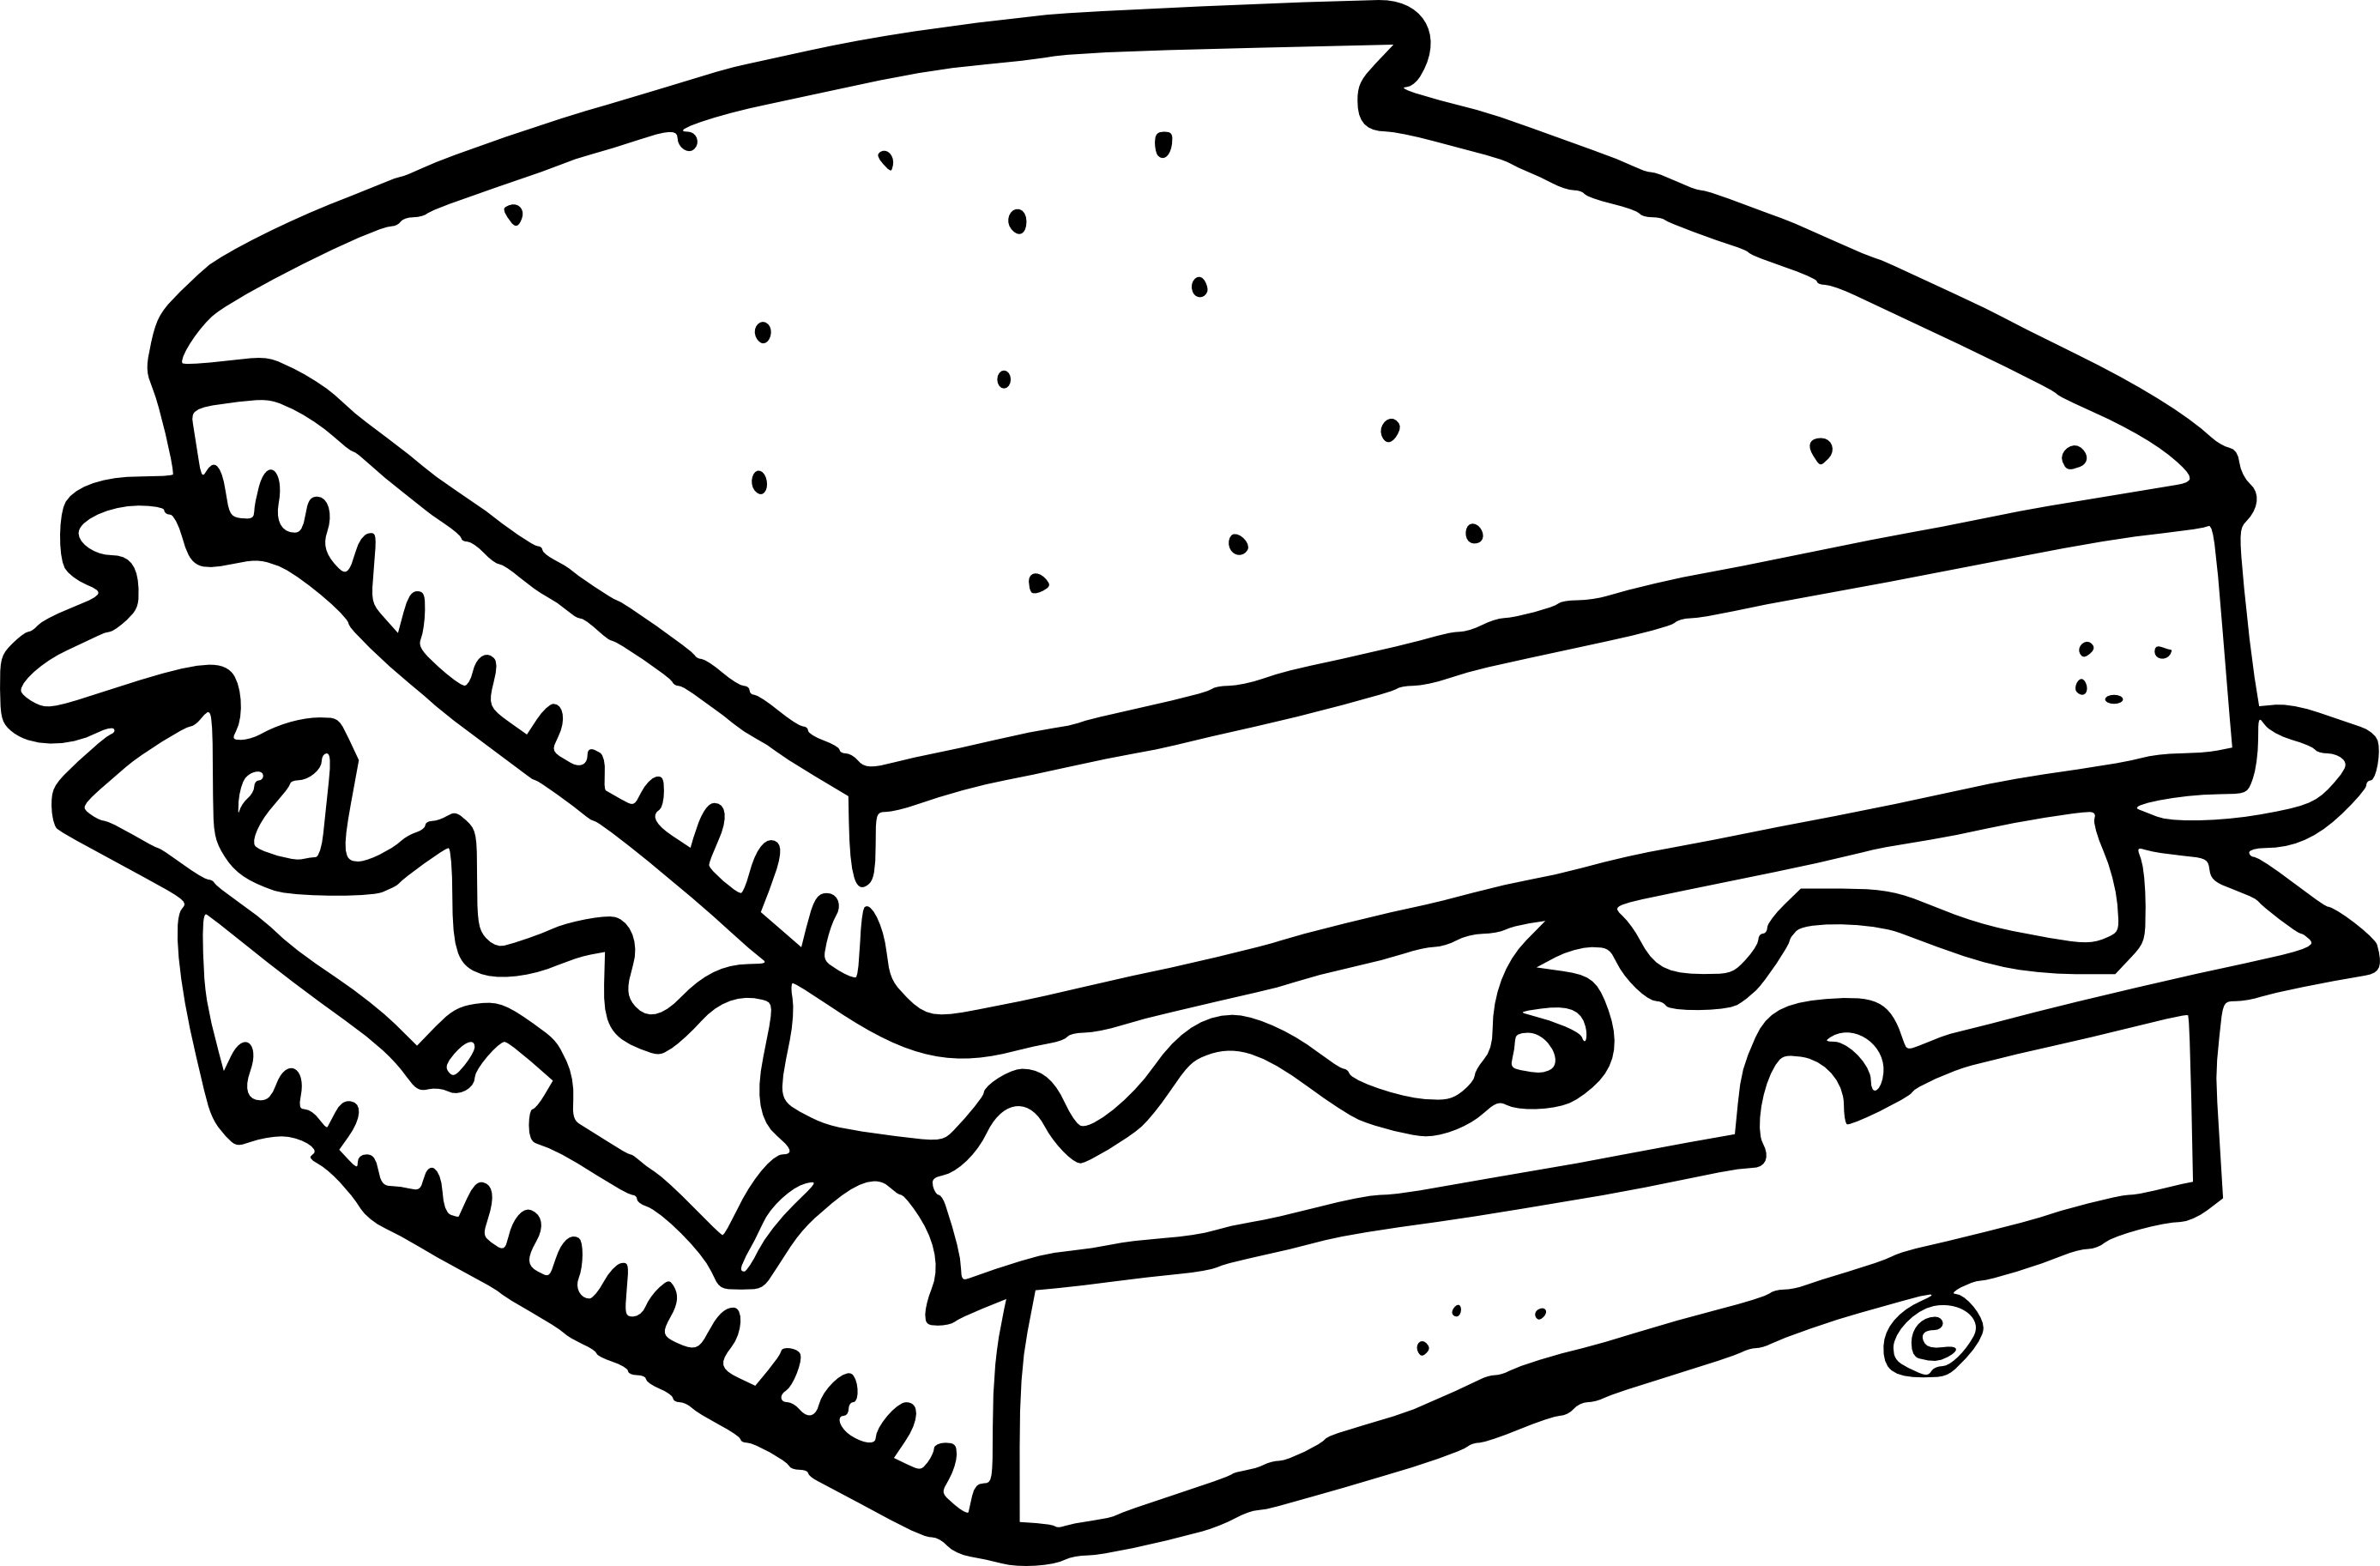 Sandwich drawing at free for personal for Sandwich coloring page